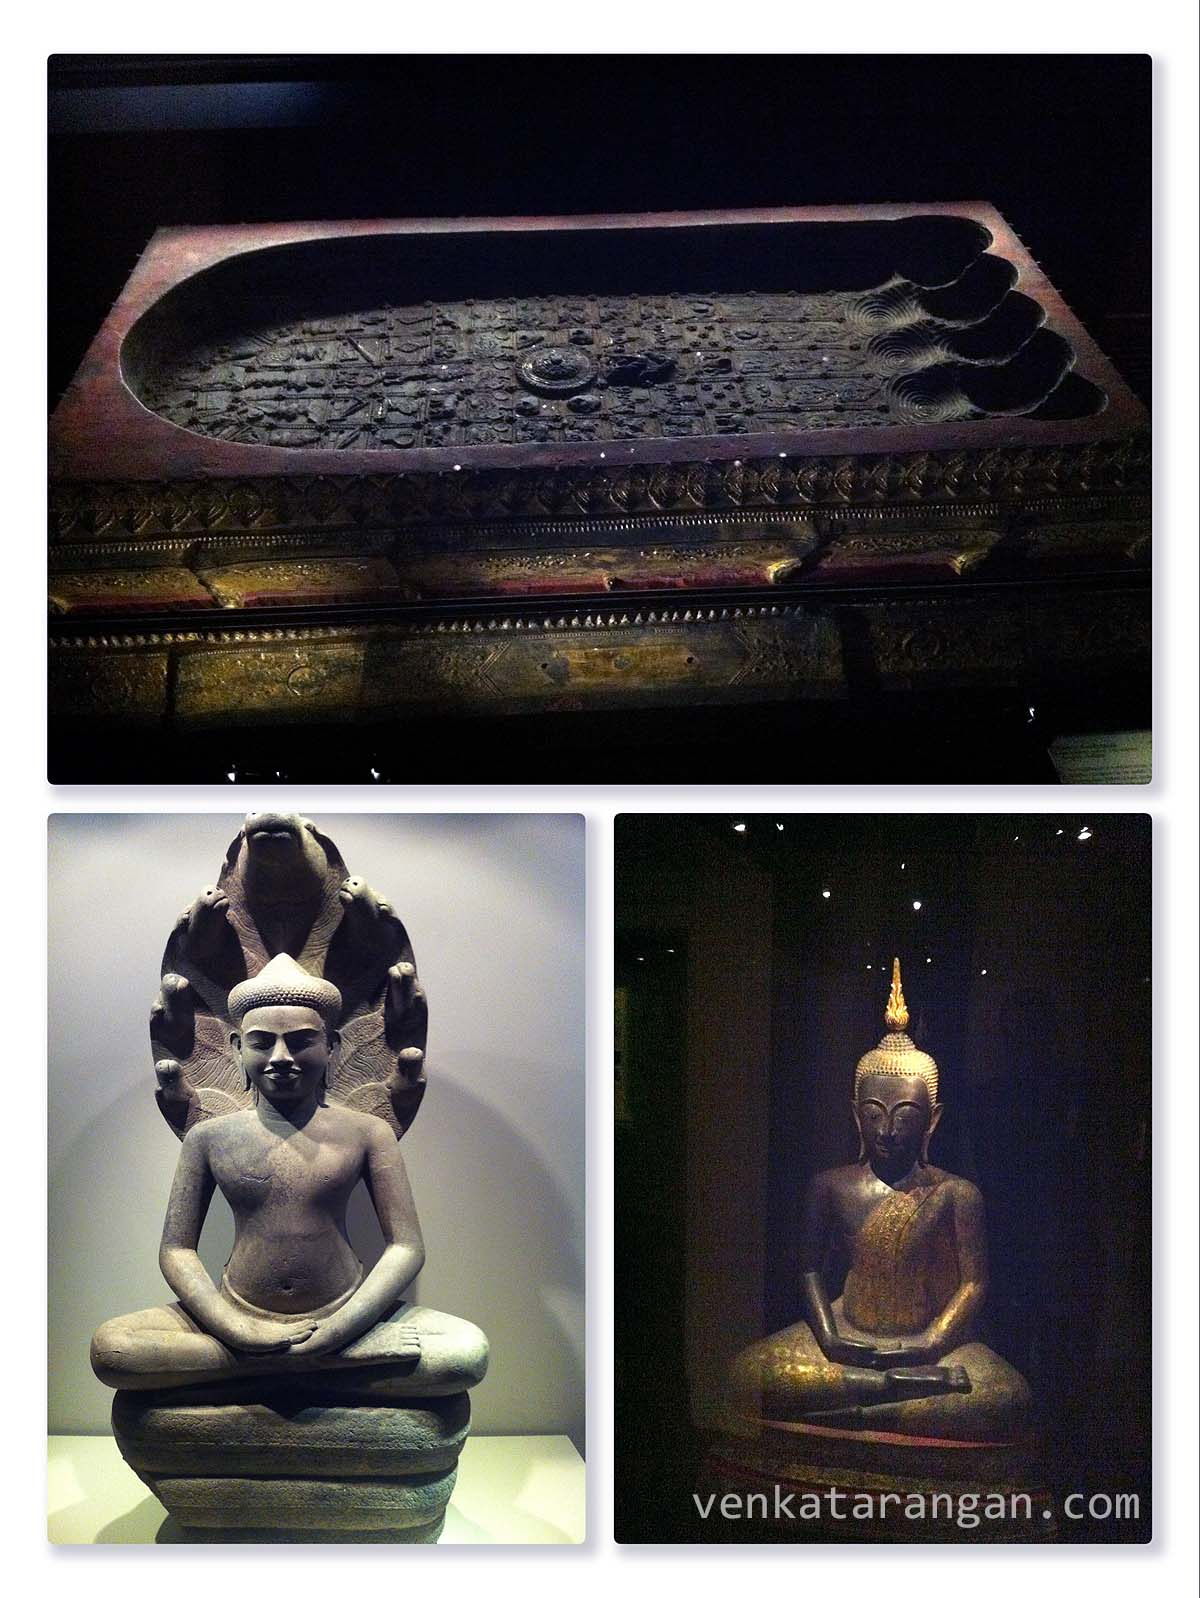 (Top) The Bronze Buddapada Thailand, Rattanakosin period, 19th century, Thailand. In the middle is a Dharmachakra (Wheel of Law), symbolic of Buddha's teachings. It is surrounded by the 108 symbols of good omens, animals of the horoscope and royal insignia.